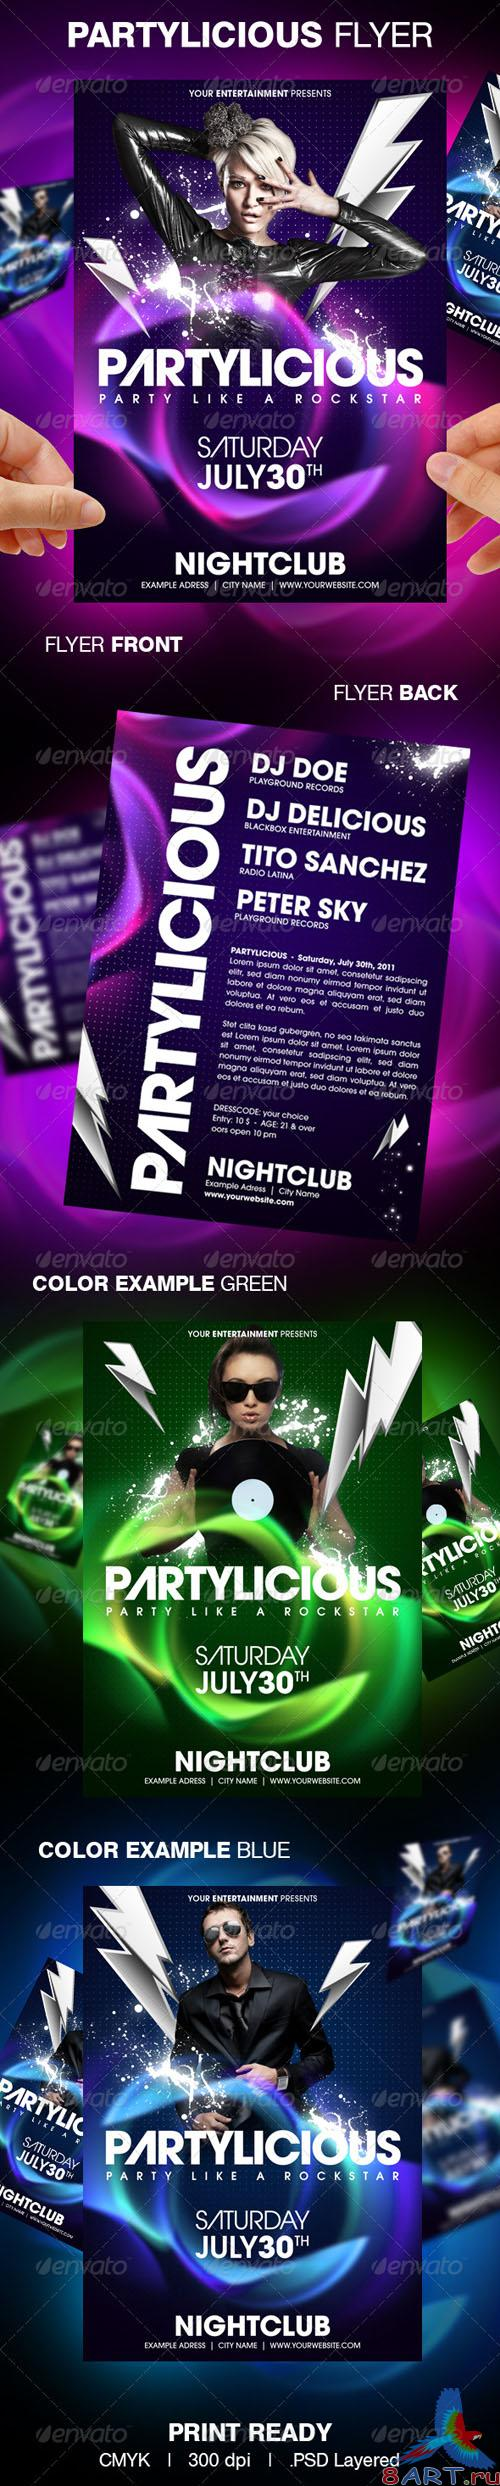 GraphicRiver - Partylicious Party Flyer